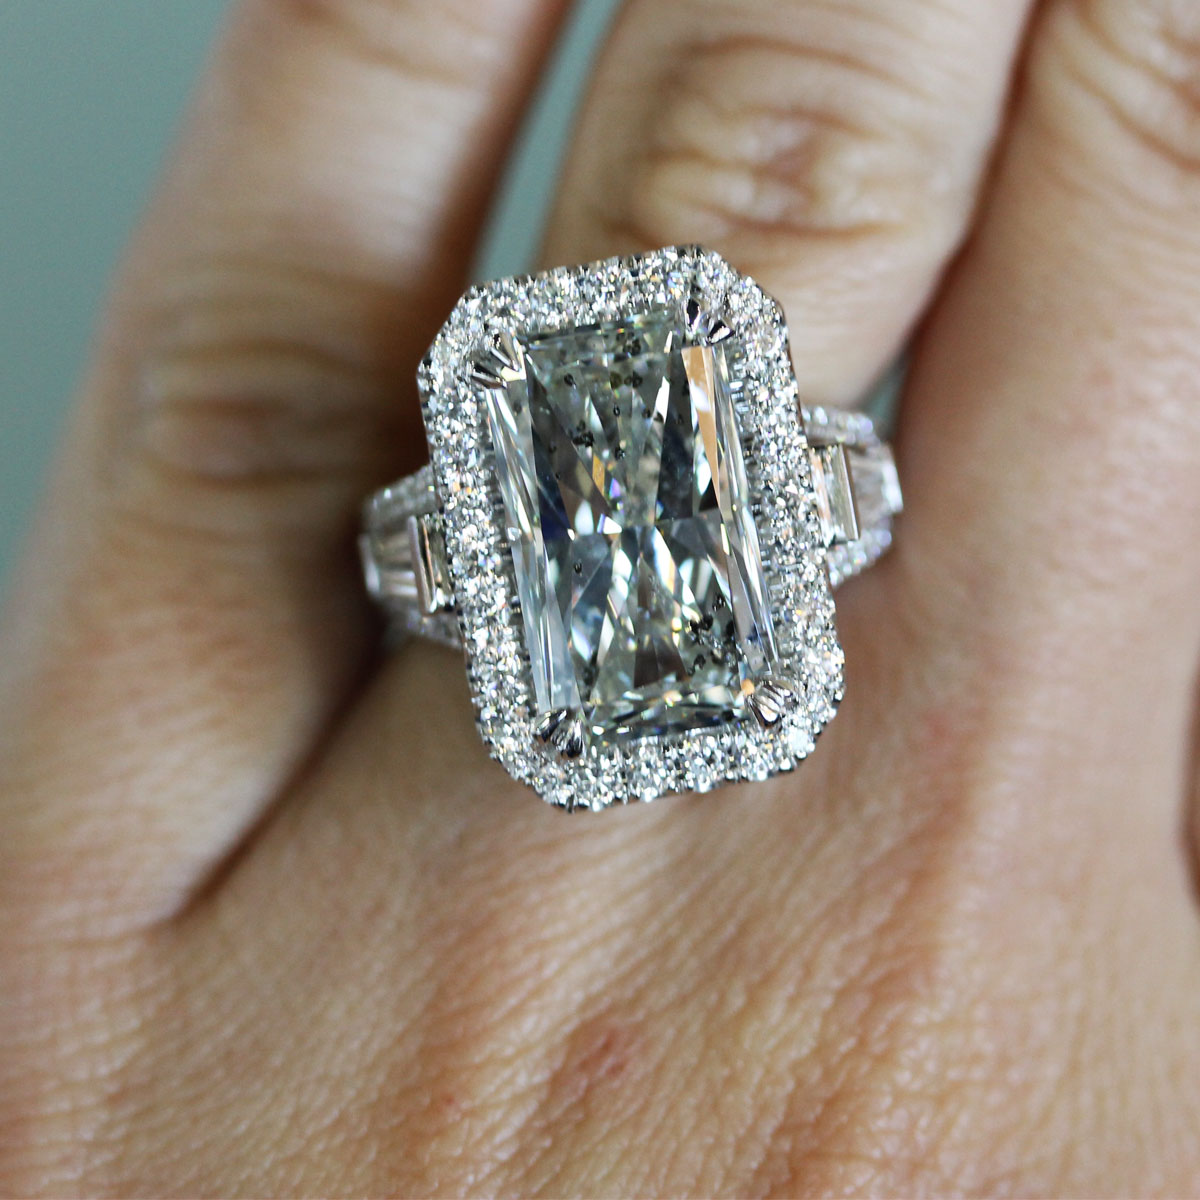 Egl Certified 9 03ct Radiant Cut Diamond Engagement Ring